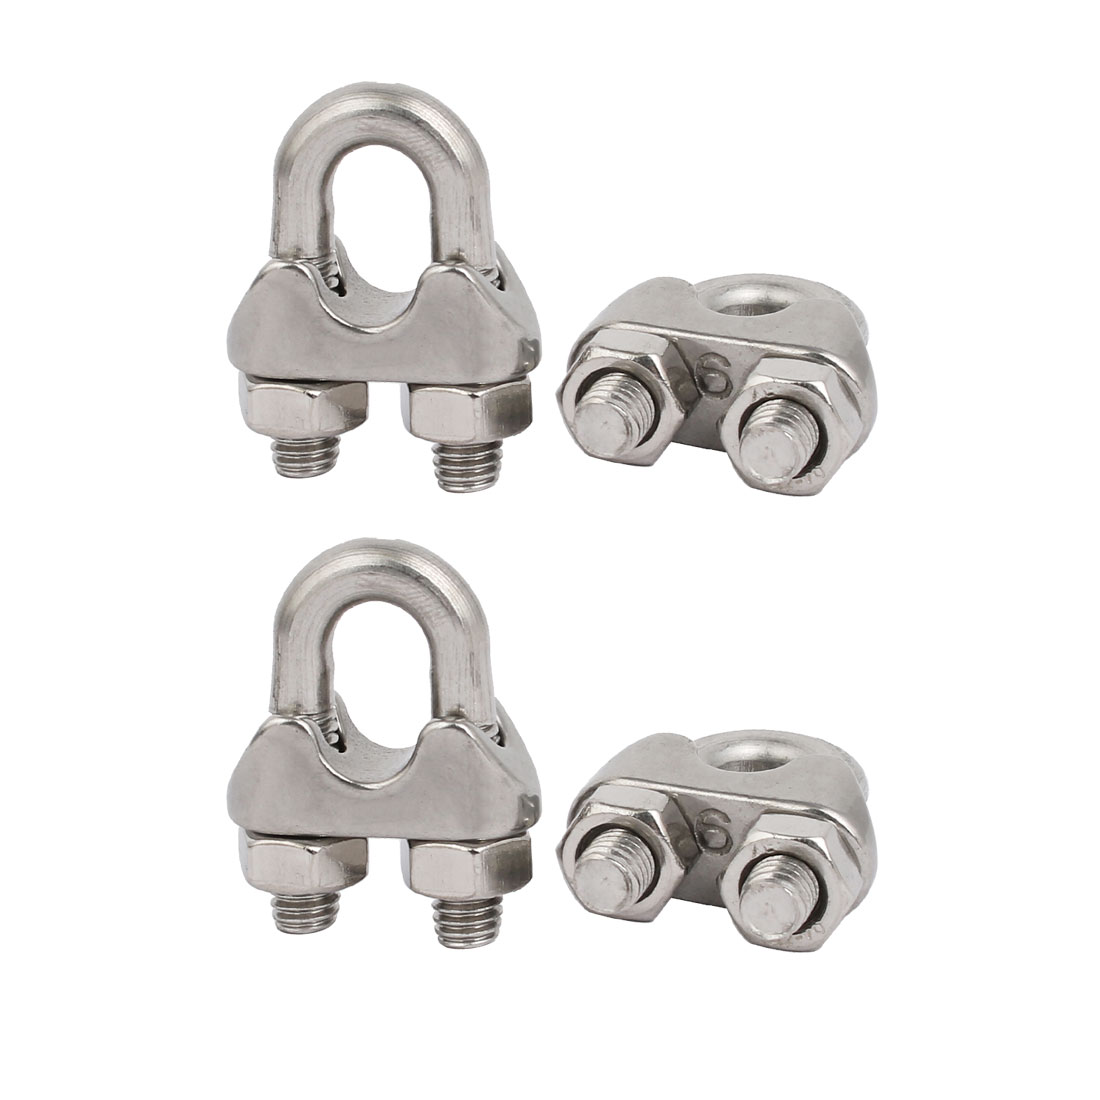 "4pcs Stainless Steel Cable Clip Saddle Clamp for 1/4"" 6mm Wire Ropes"